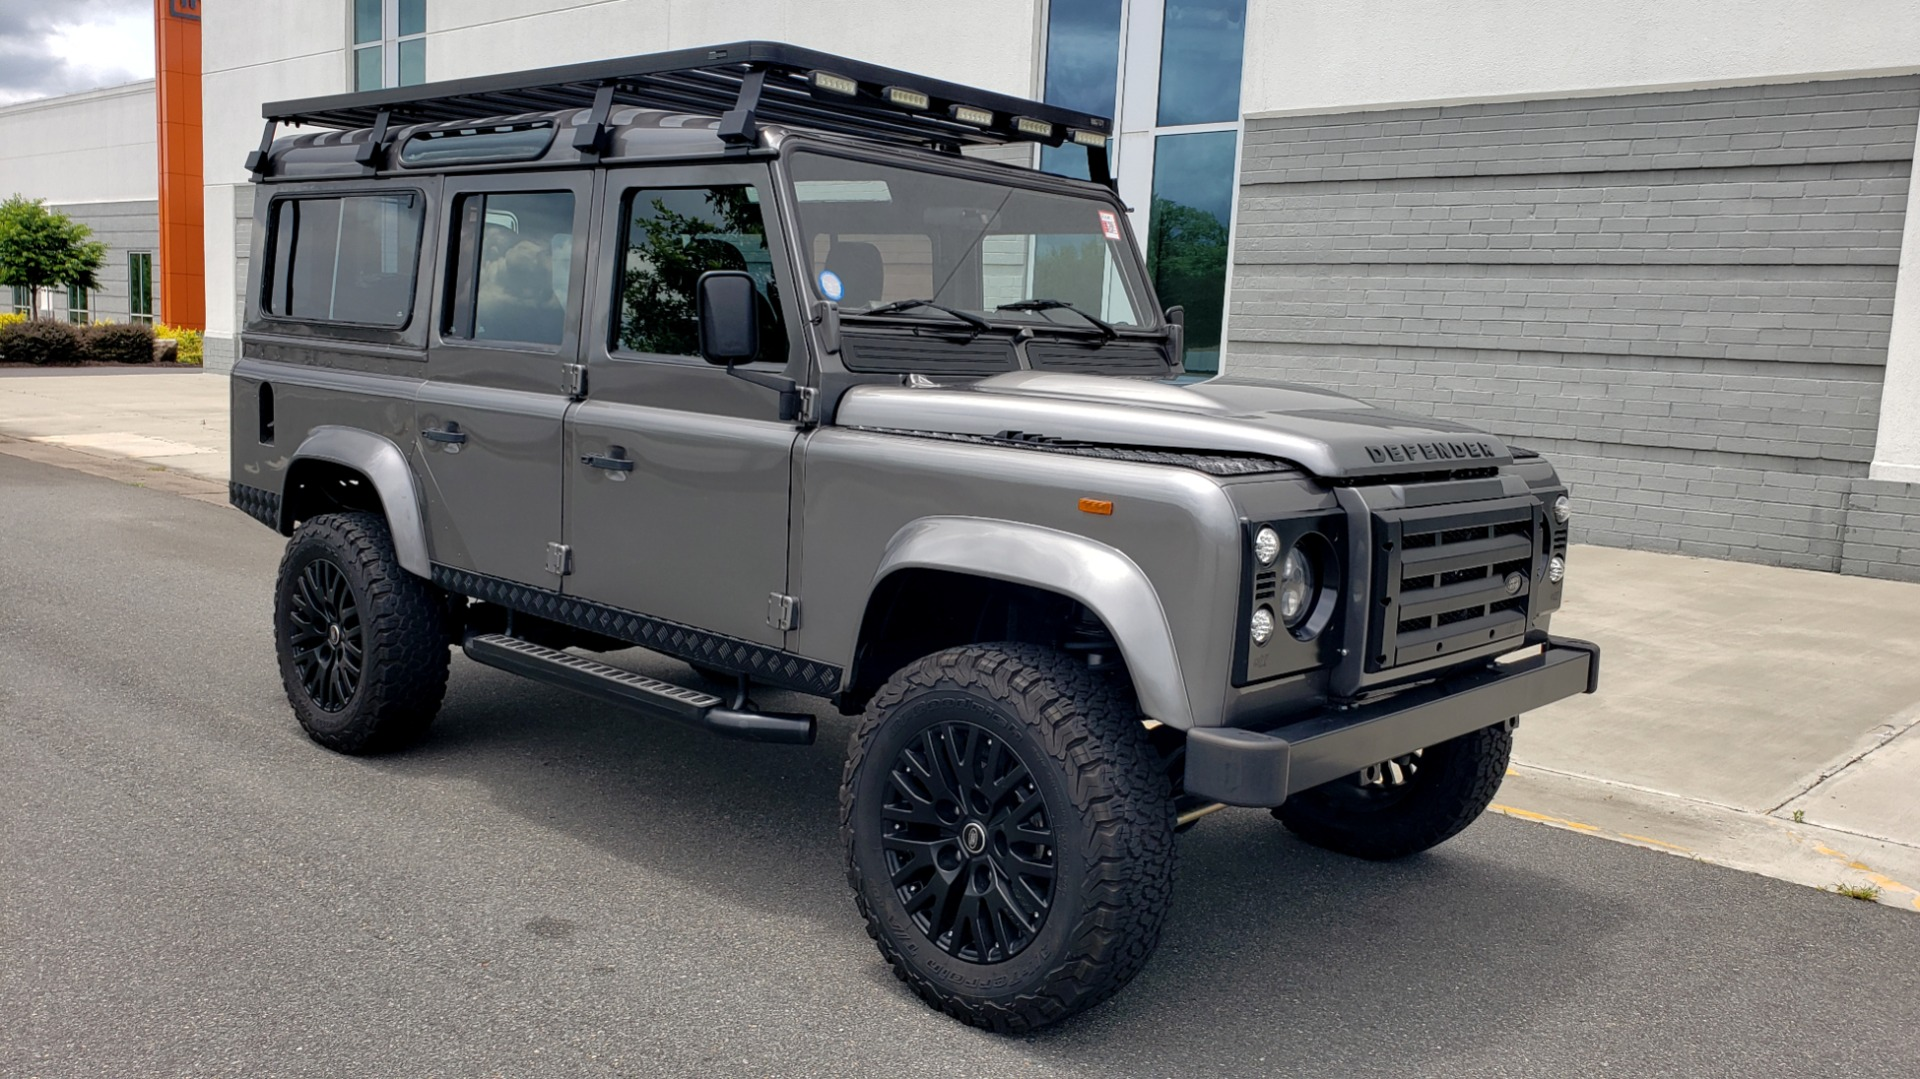 Used 1988 Land Rover DEFENDER 110 CUSTOM 4X4 / LS V8 / PUSH BUTTON AUTO / LEATHER / ROOF RACK for sale $147,888 at Formula Imports in Charlotte NC 28227 23